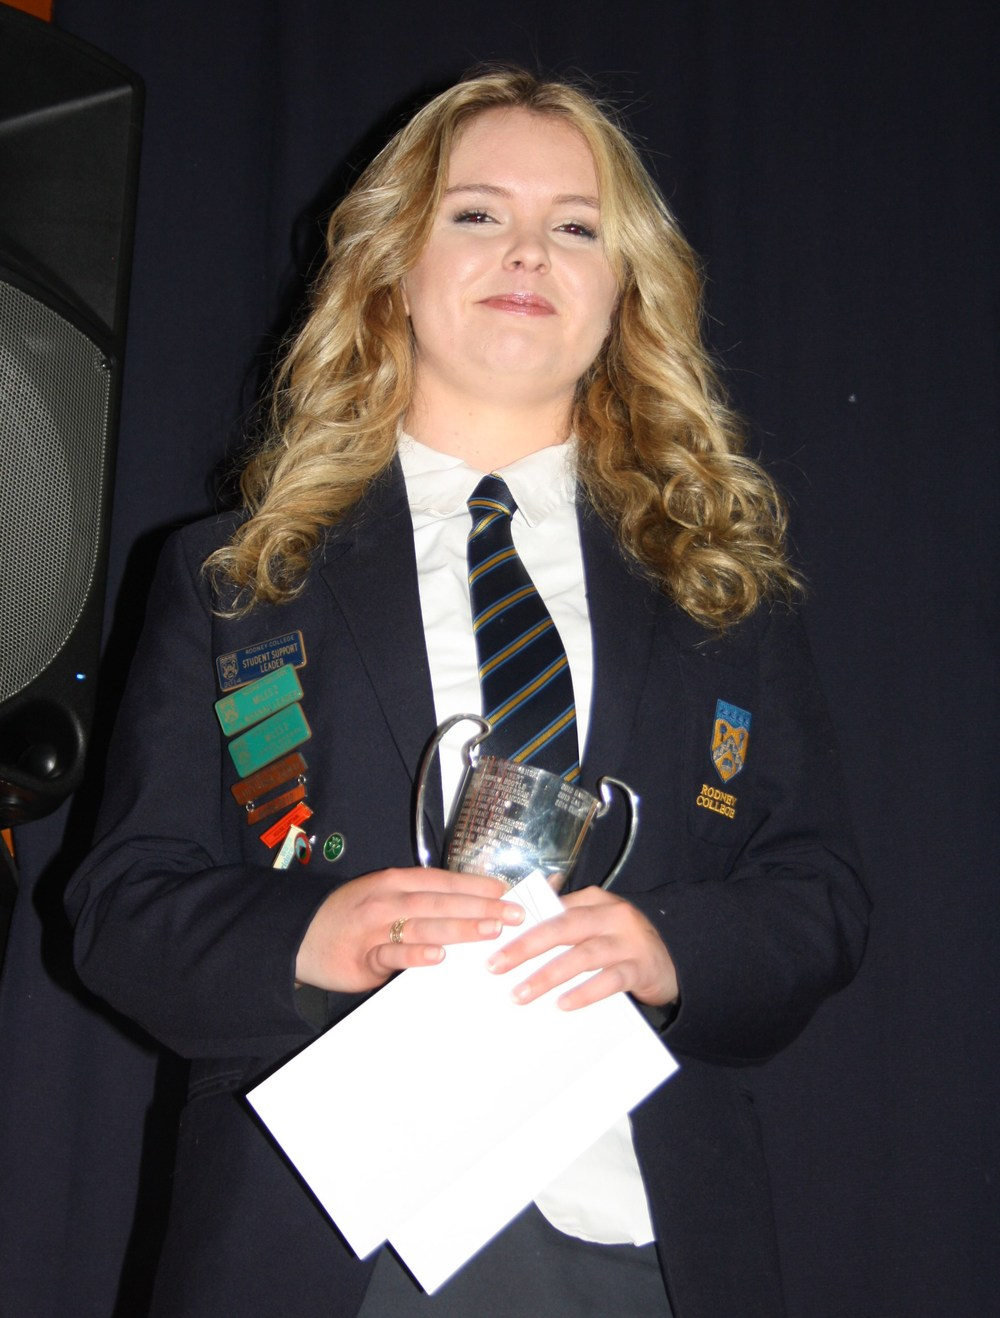 Libby Campbell, Dux for 2014 and winner of the Waikato University Golden Jubilee 50th Anniversary scholarship